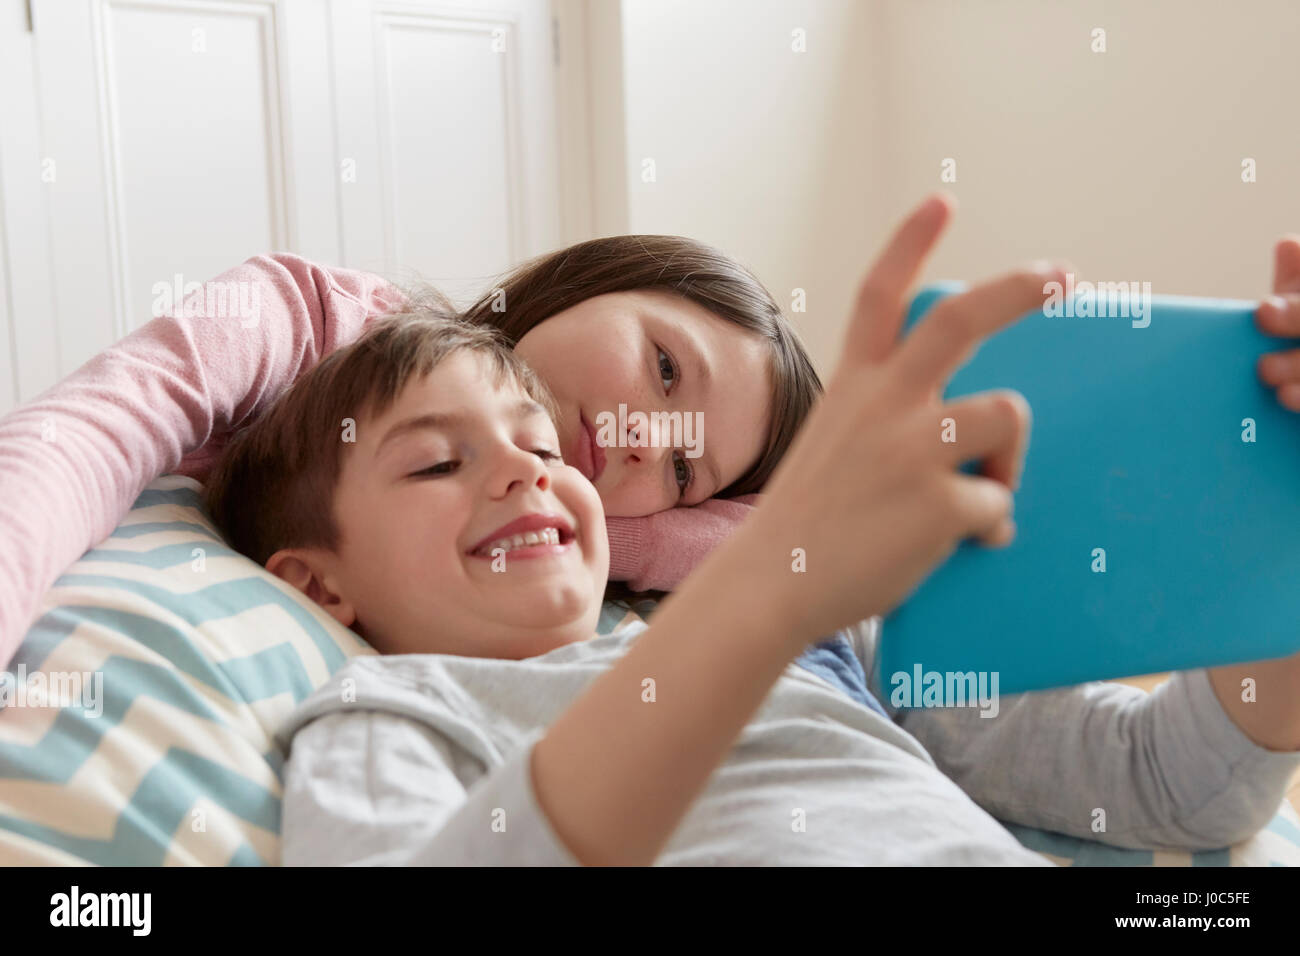 Boy and sister reclining on beanbag chair looking at digital tablet - Stock Image